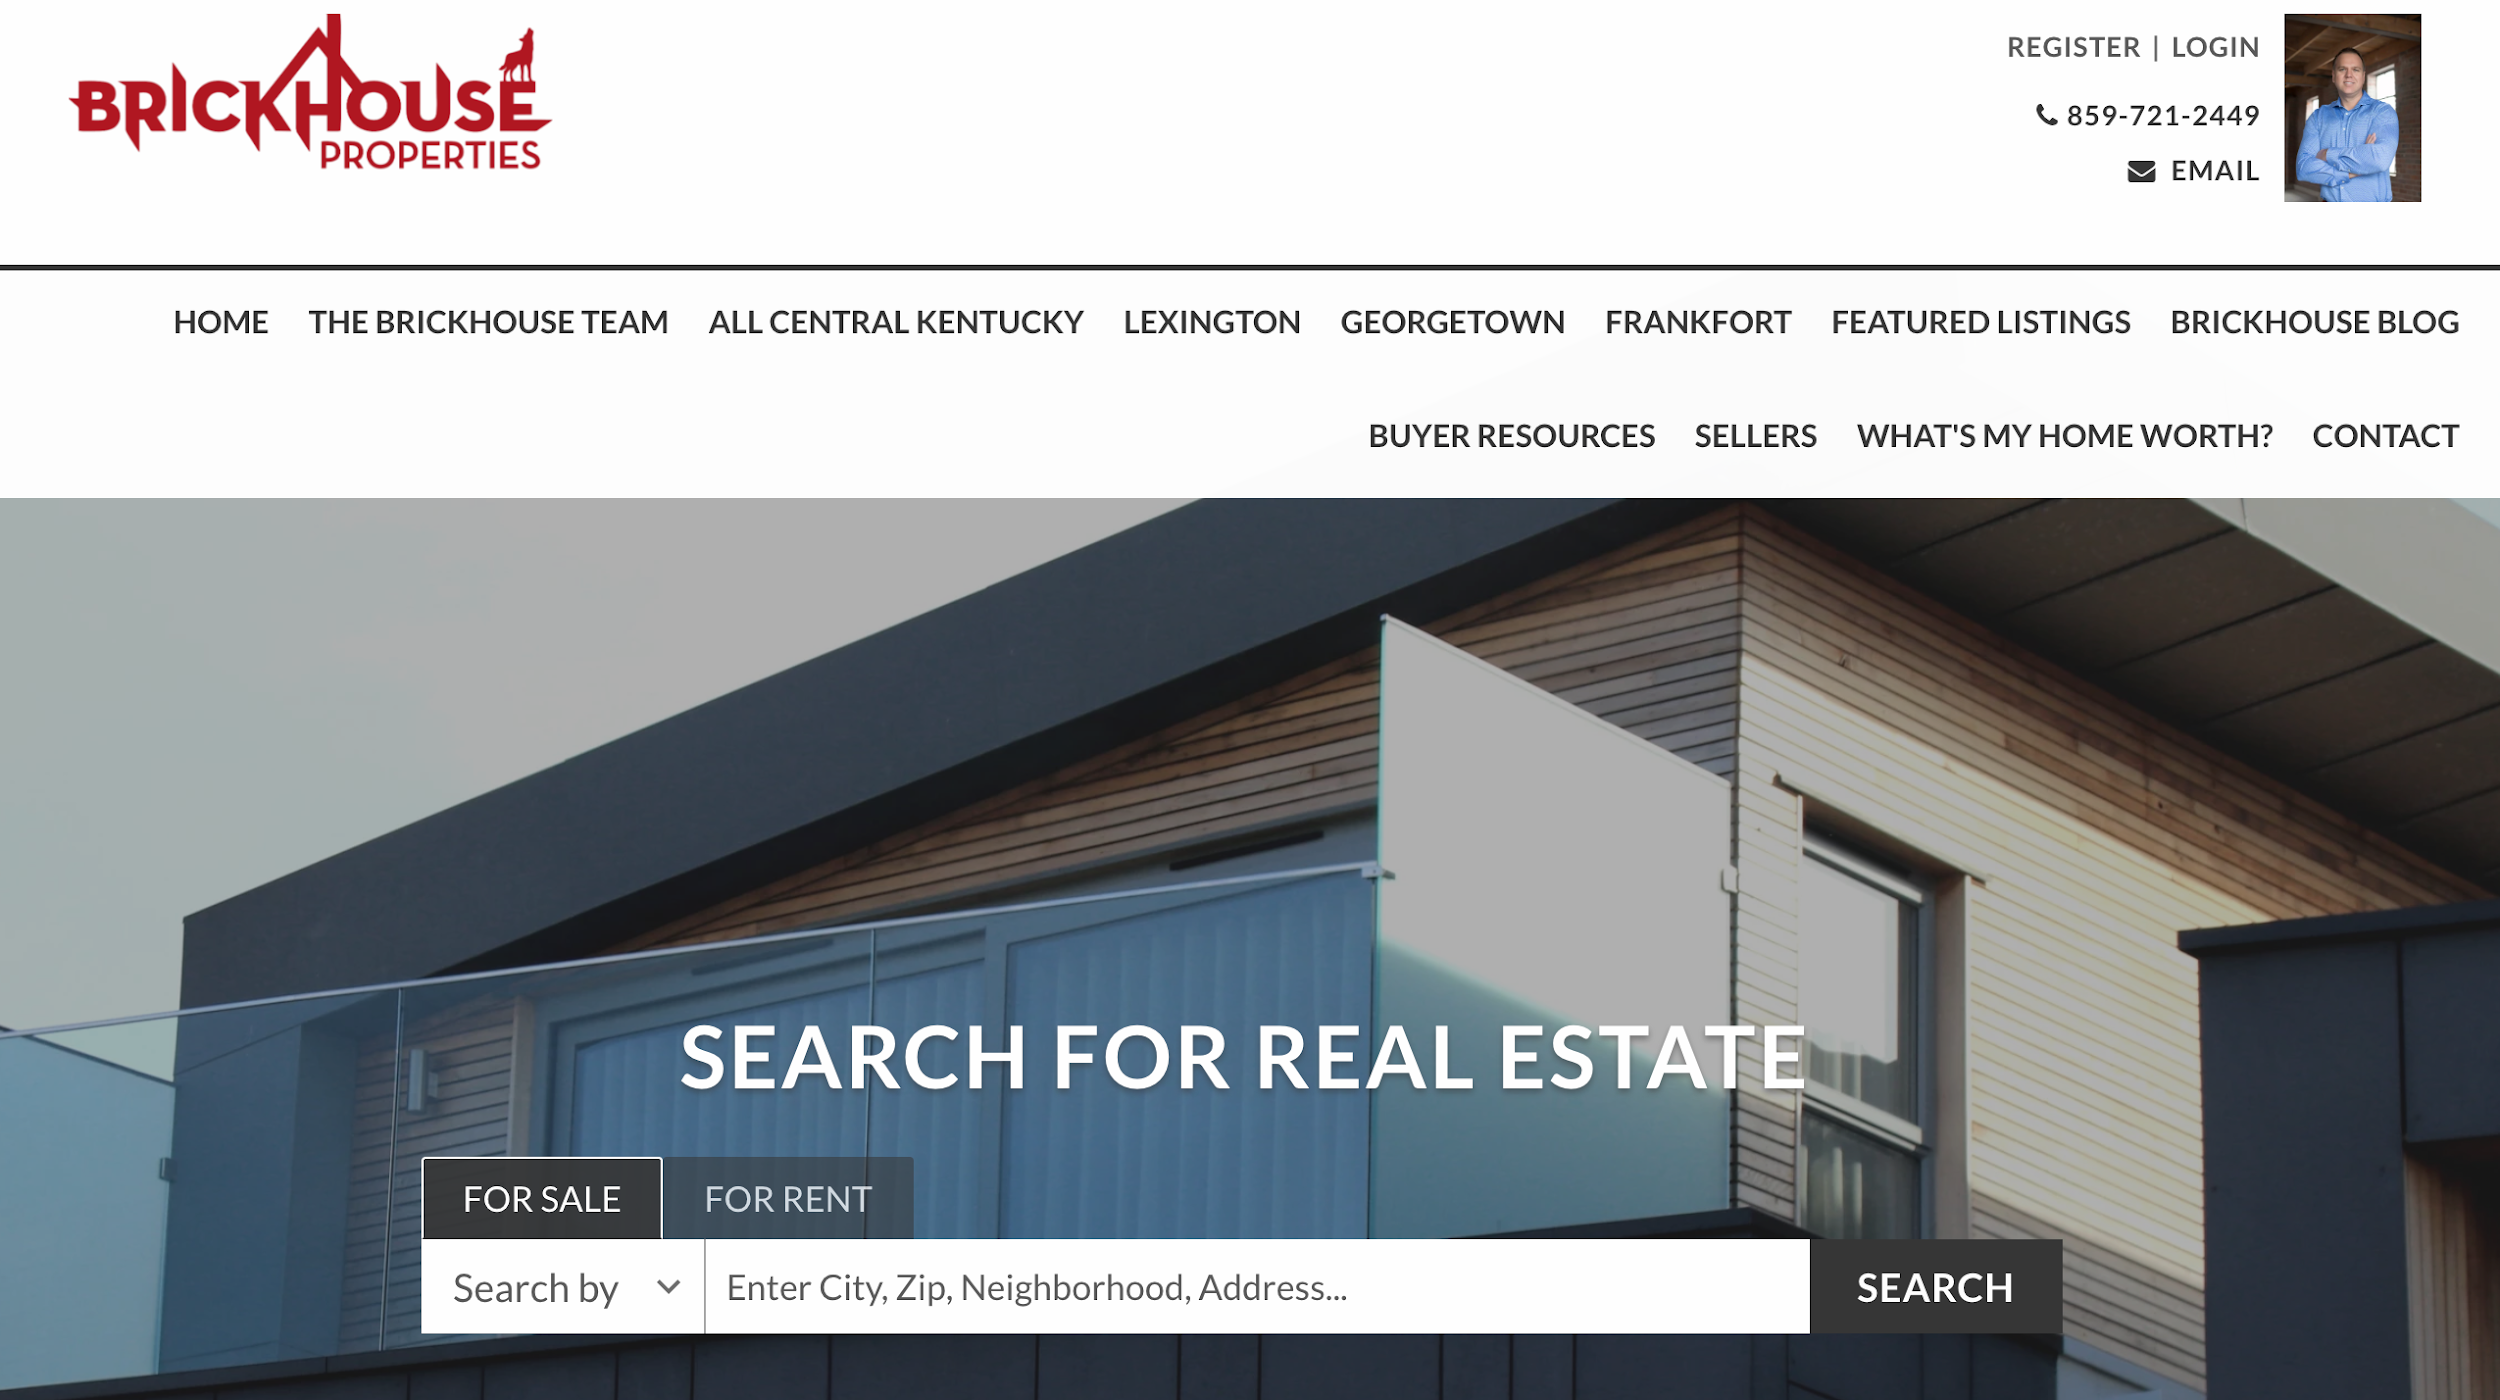 Brickhouse Properties - real estate web design